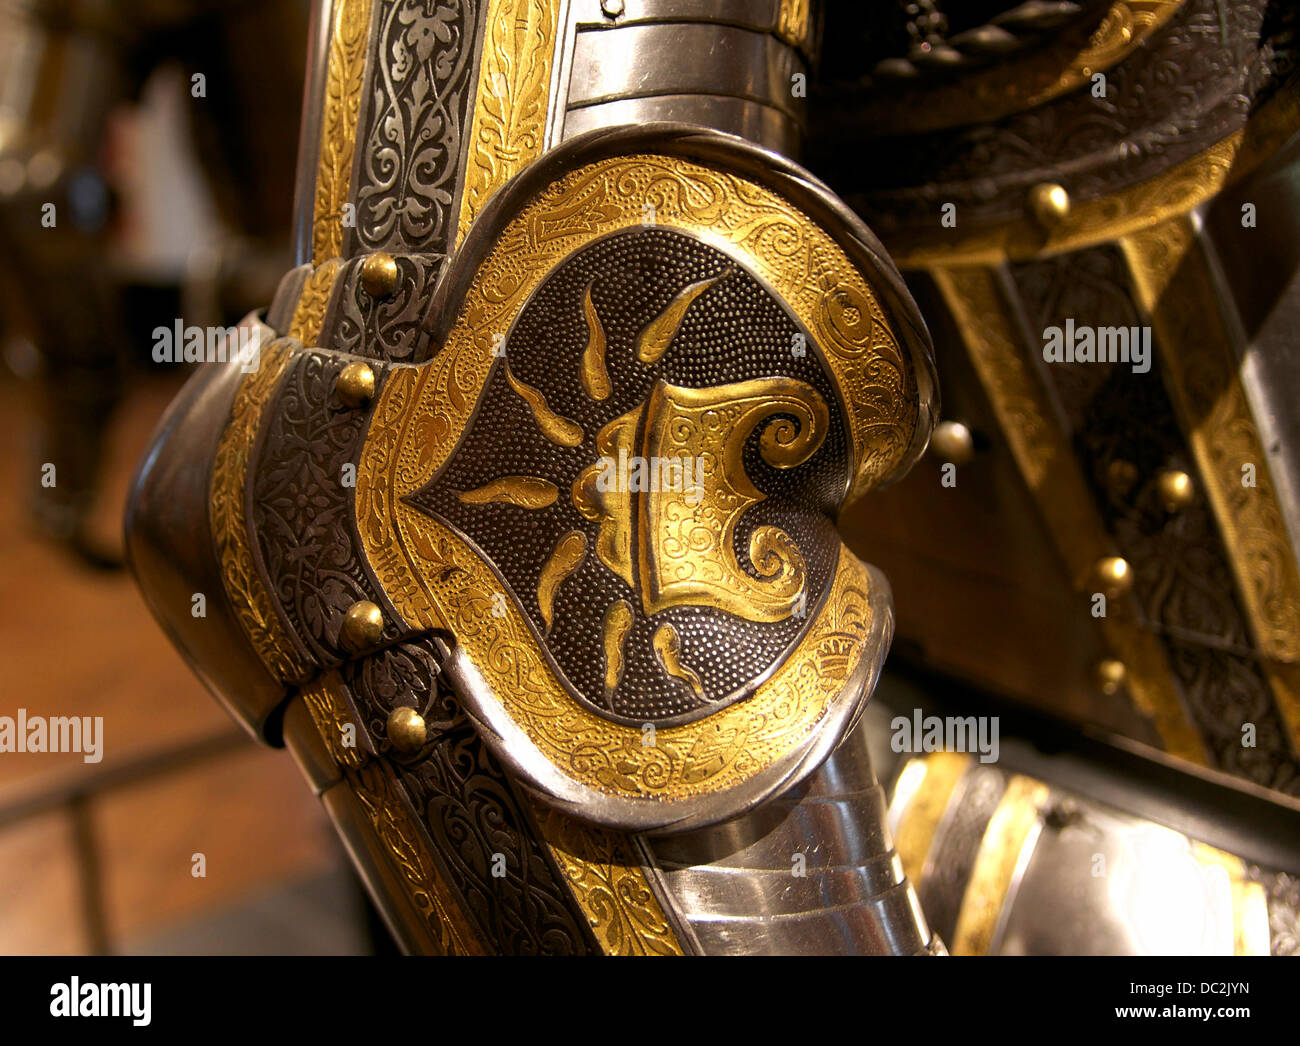 Couter of an imperial armour decorated with the firesteel one of couter of an imperial armour decorated with the firesteel one of the symbols of the house of habsburg see the golden fleece biocorpaavc Choice Image